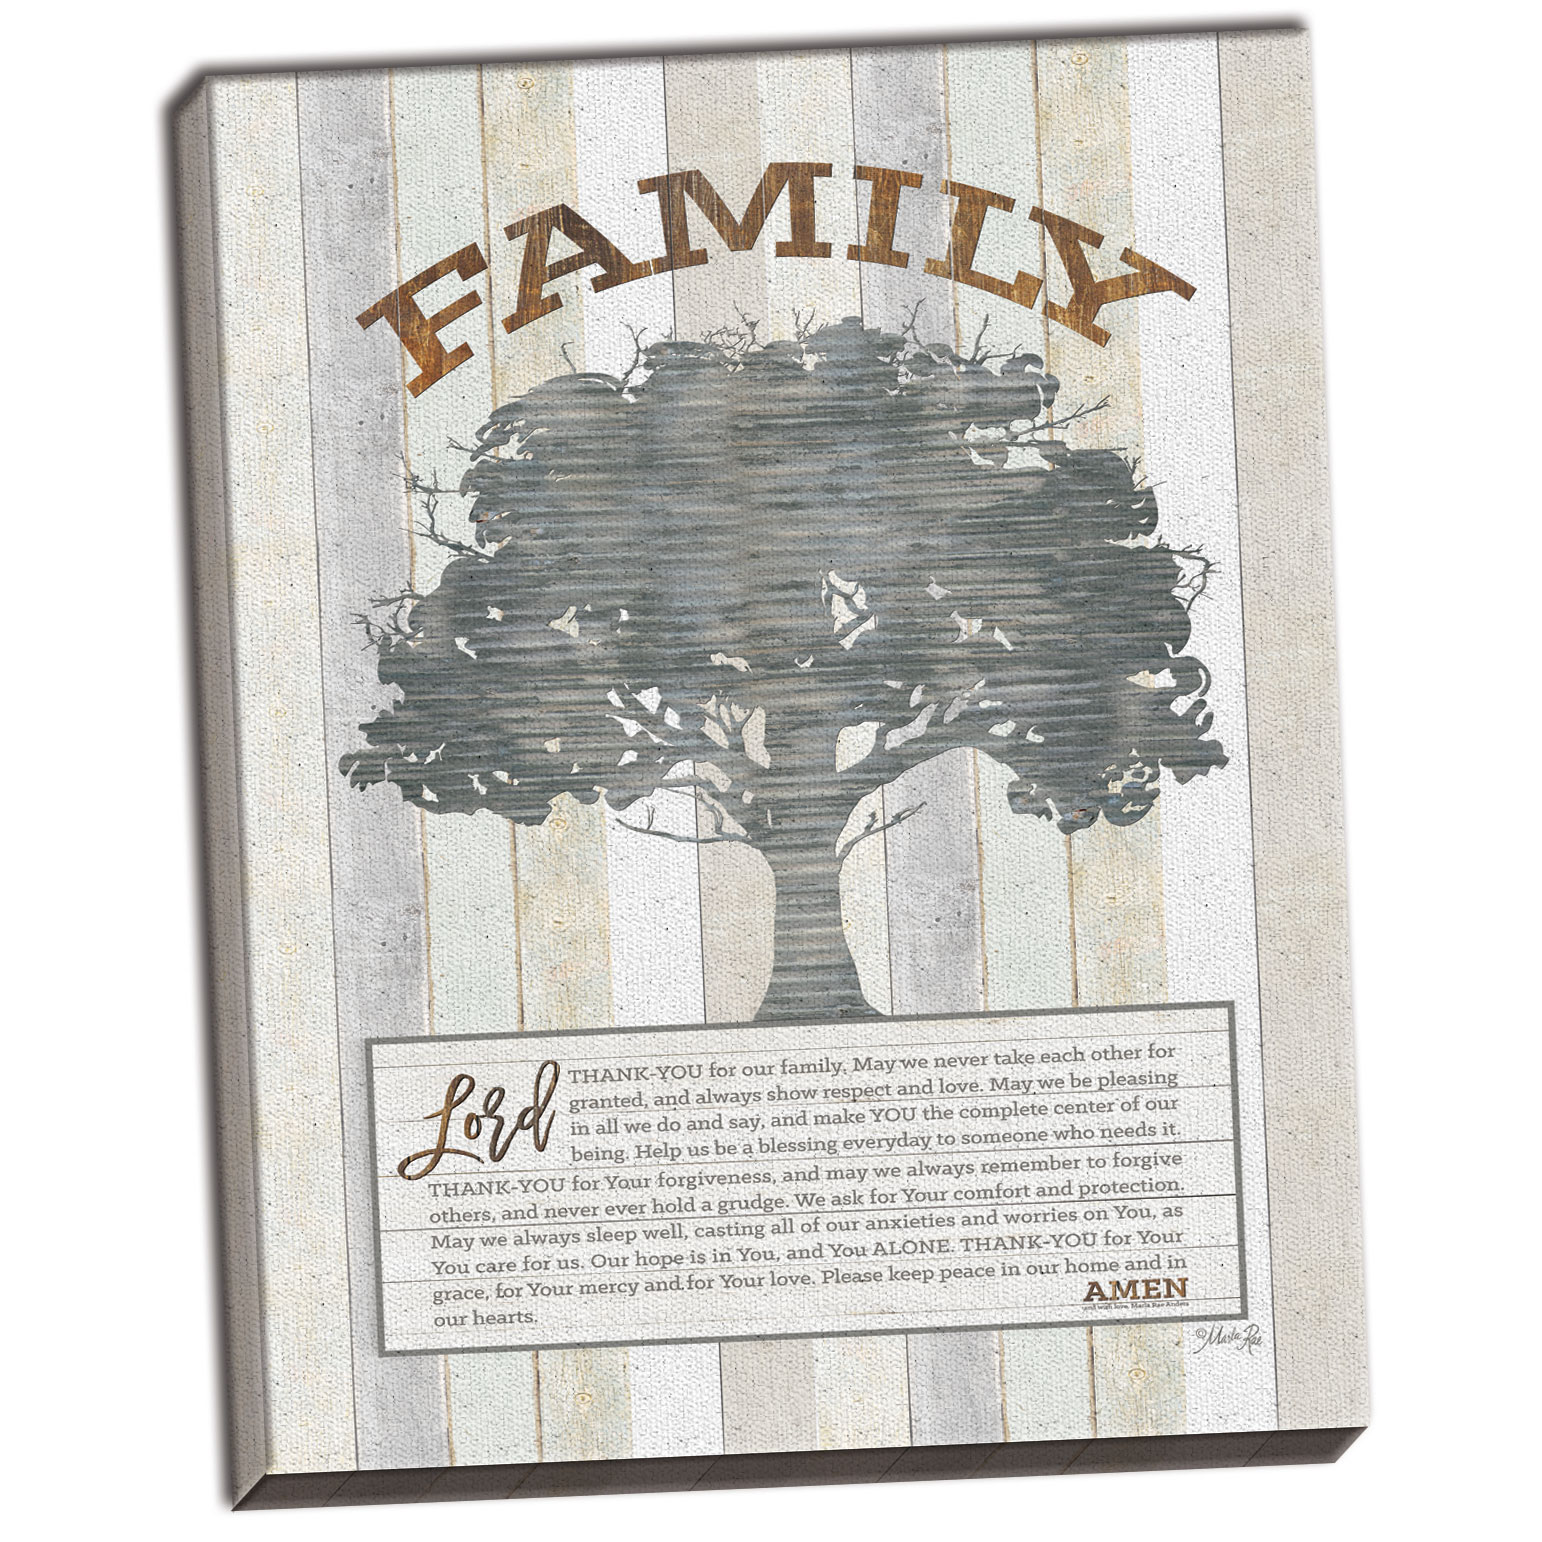 Gango Home Decor Contemporary Family Prayer Tree by Marla Rae (Ready to Hang); One 12x16in Hand-Stretched Canvas